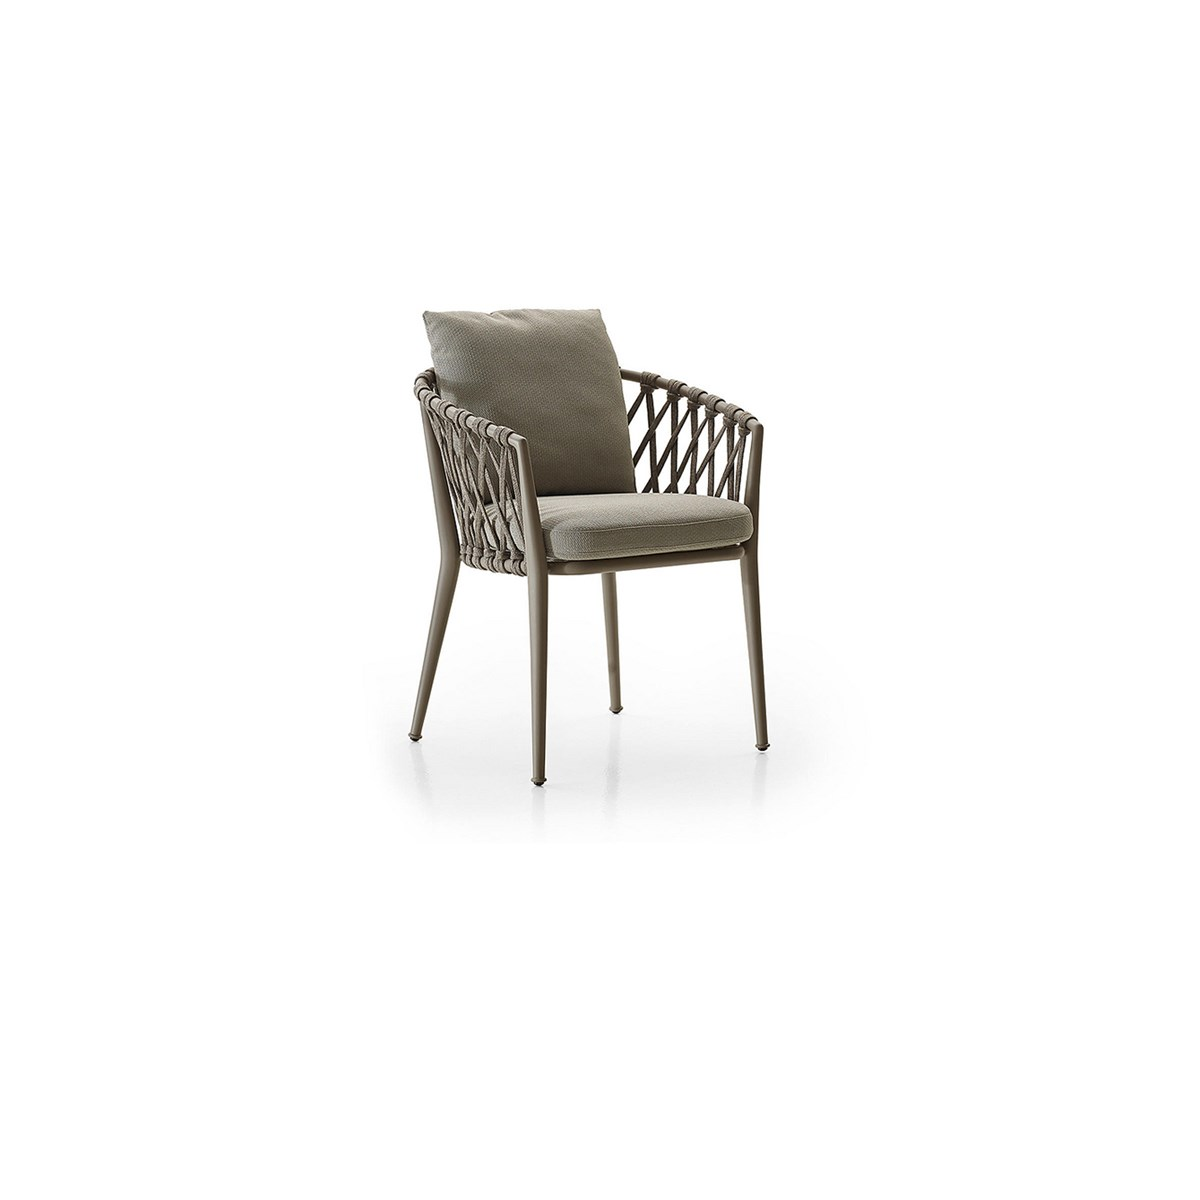 Erica Outdoor Chairs